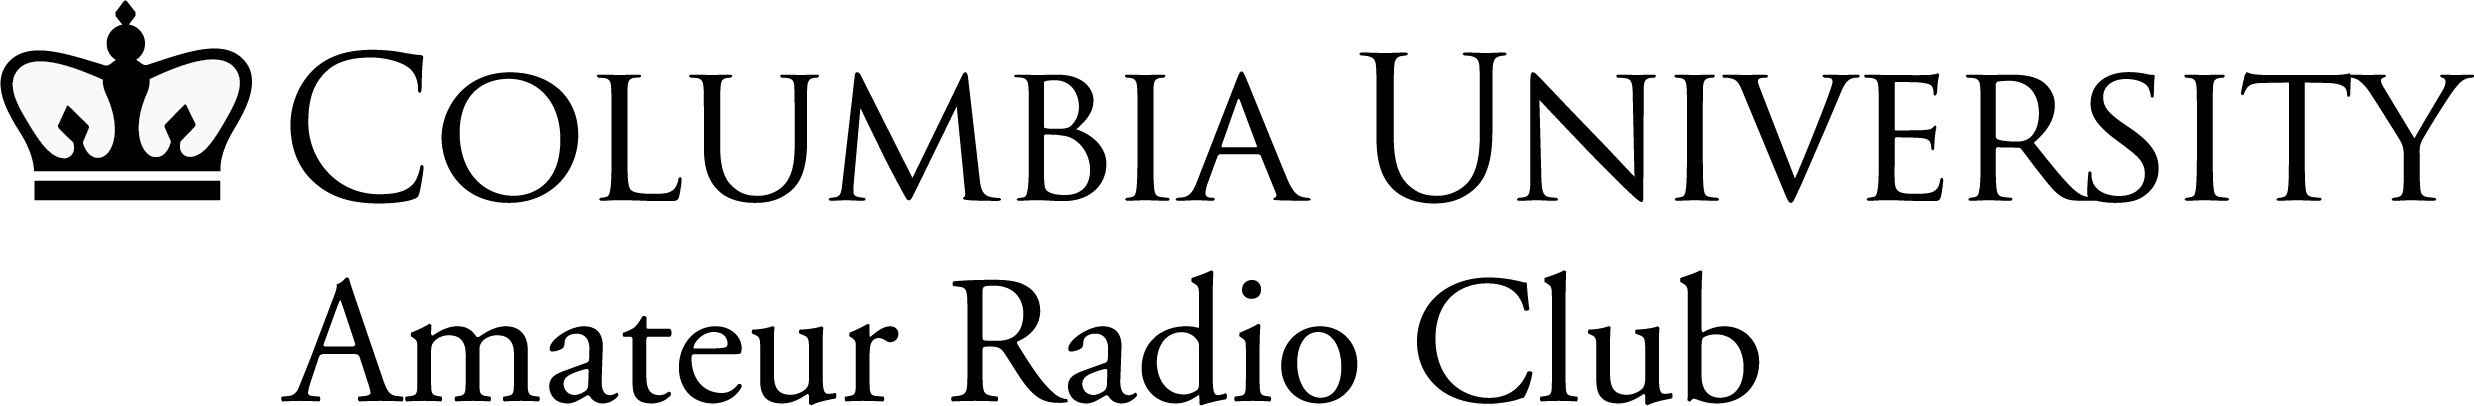 Amateur Radio Club logo